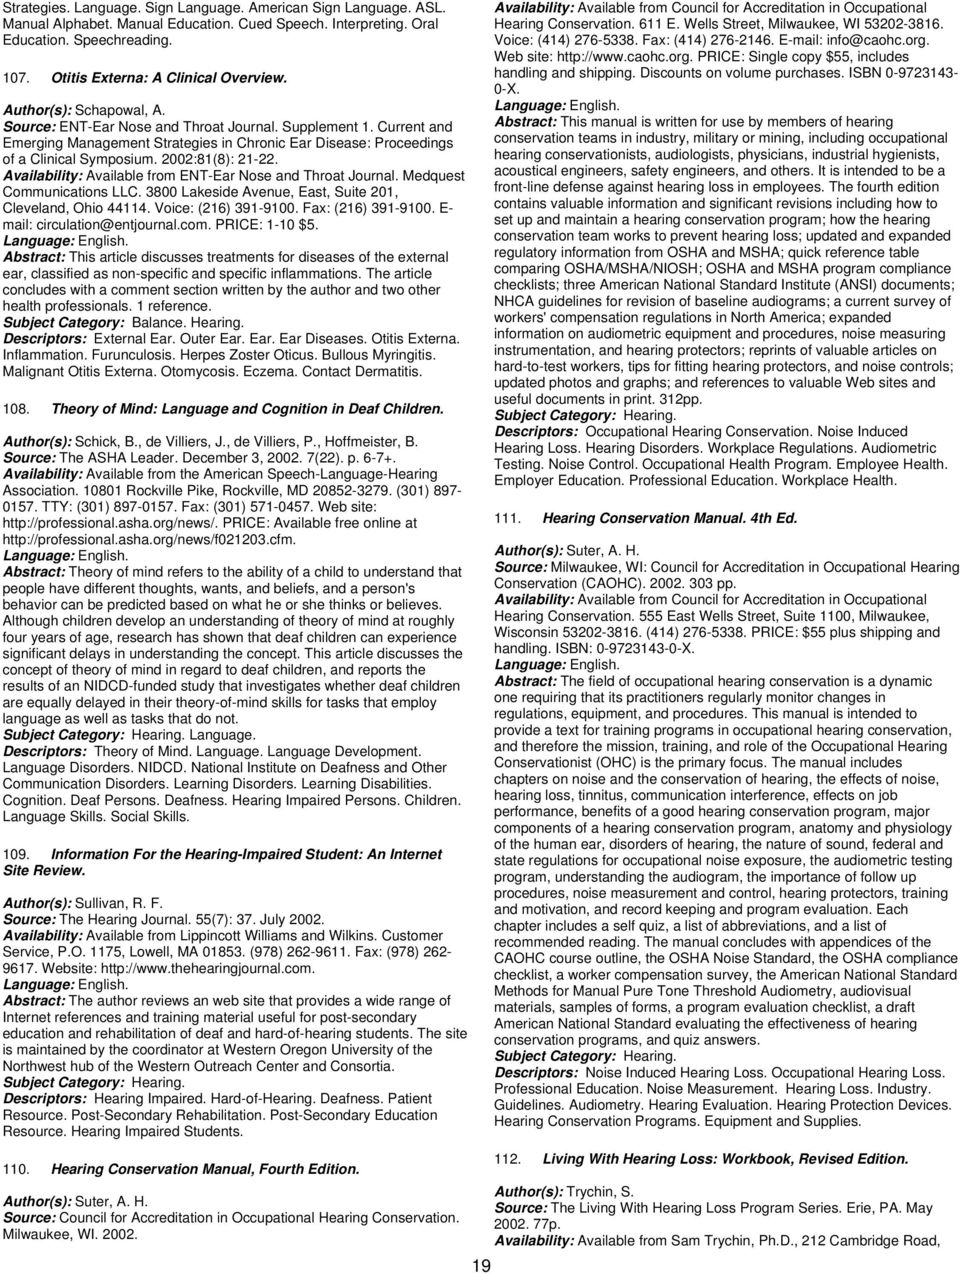 2002:81(8): 21-22. Availability: Available from ENT-Ear Nose and Throat Journal. Medquest Communications LLC. 3800 Lakeside Avenue, East, Suite 201, Cleveland, Ohio 44114. Voice: (216) 391-9100.